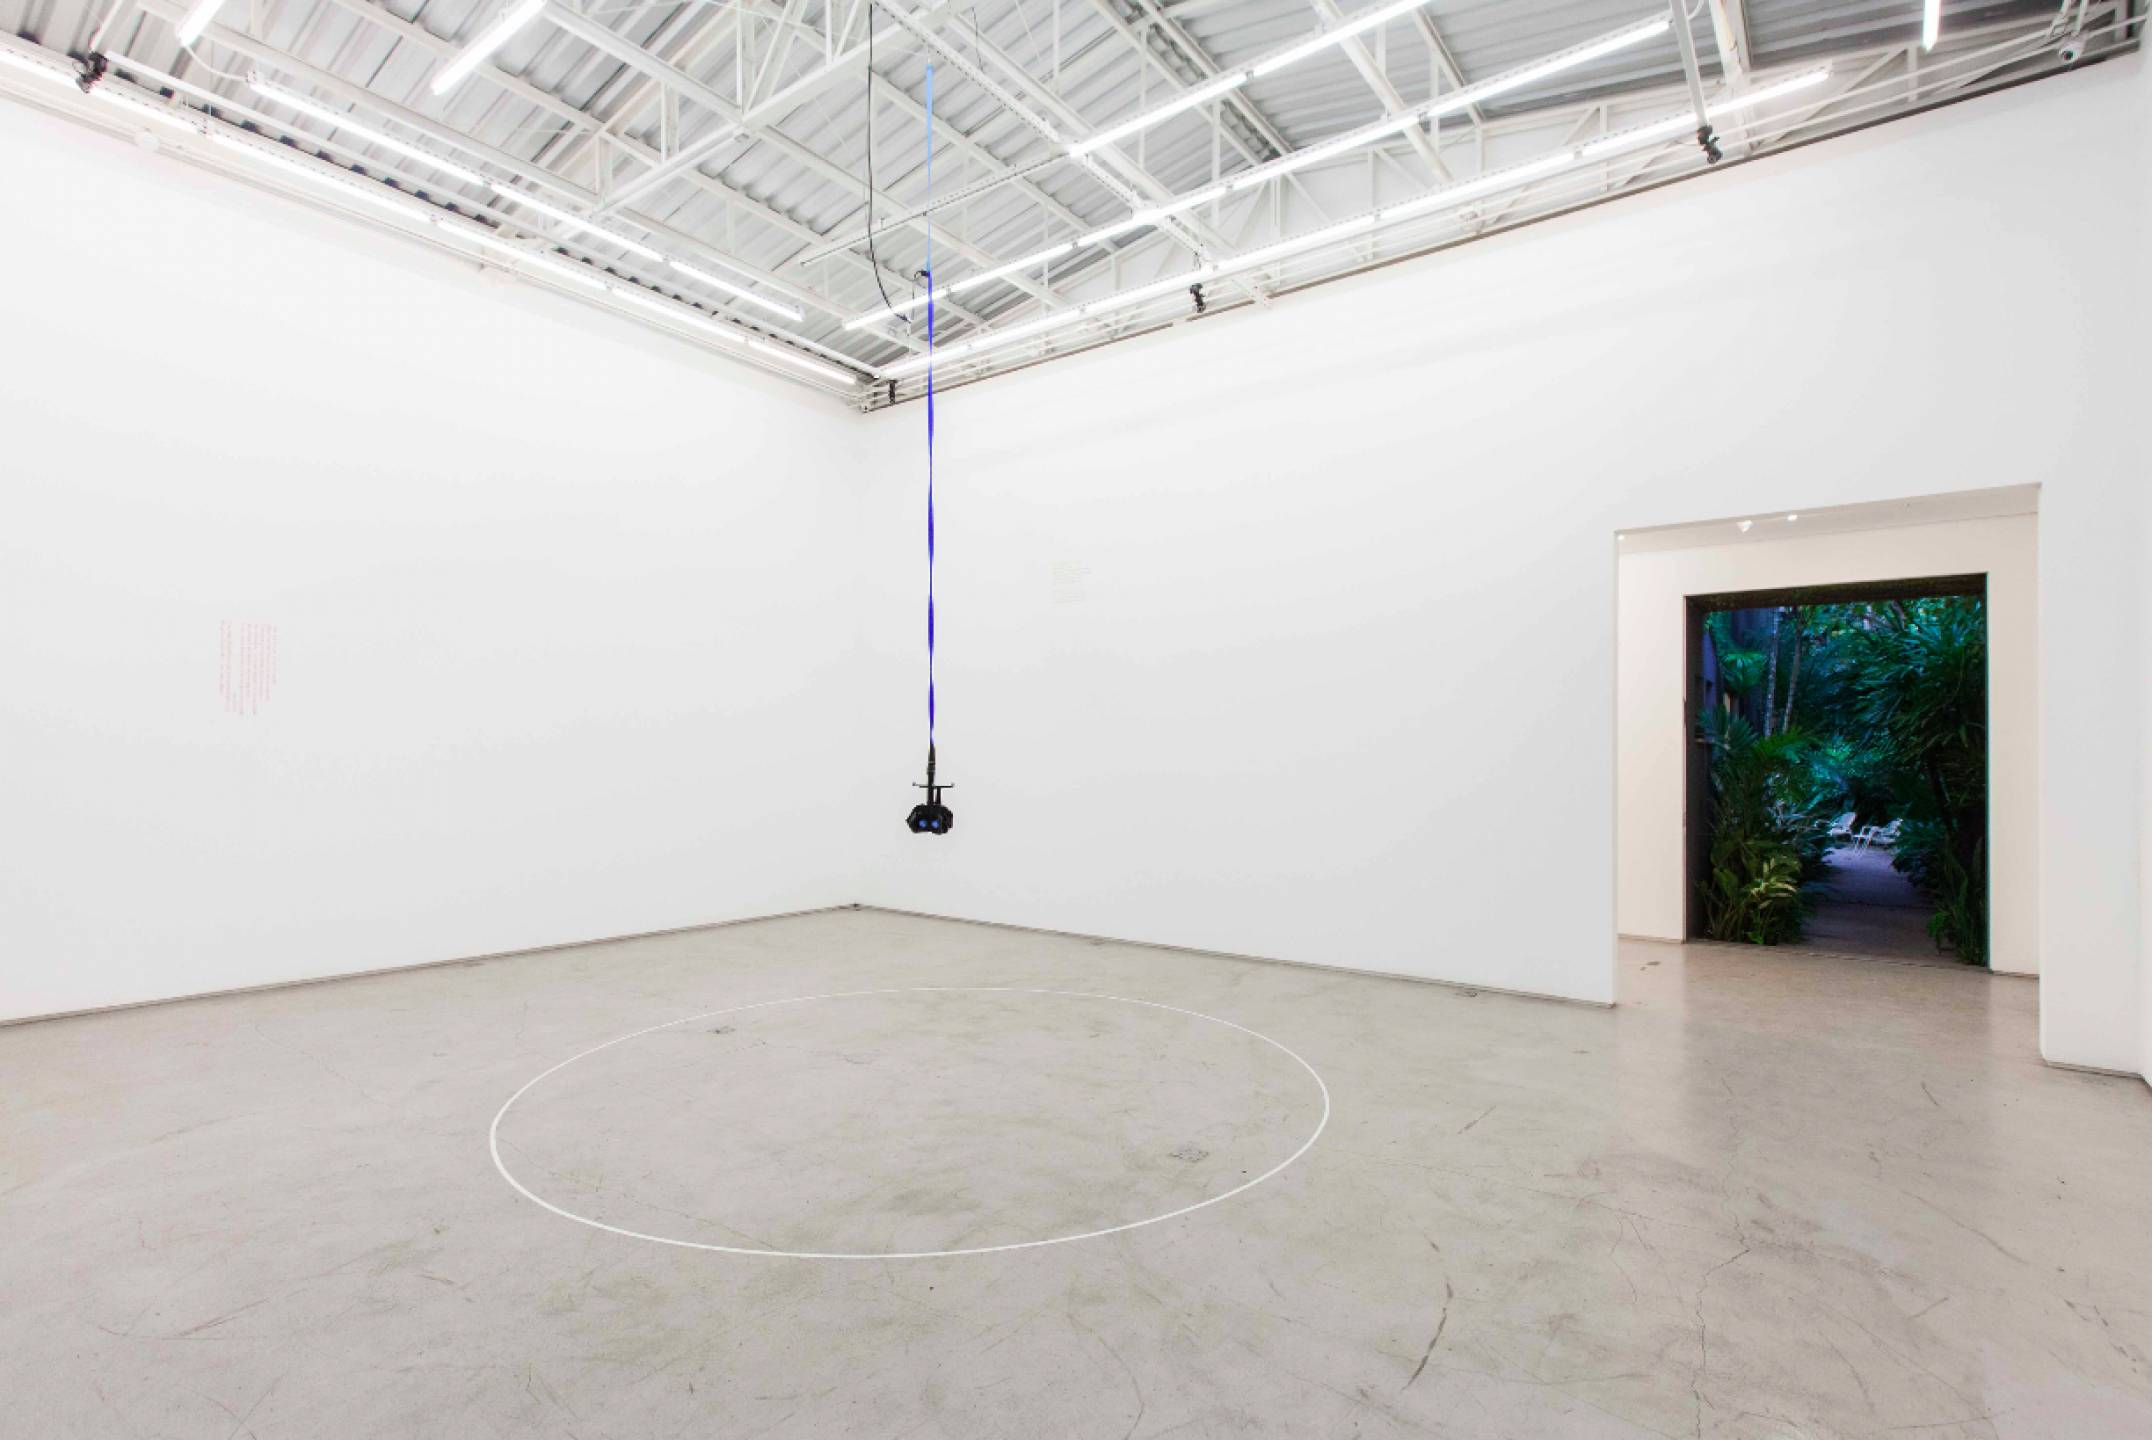 Daniel Steegmann Mangrané, <em>Kingdom of all animals and all the the beasts is my name,</em> Mendes Wood DM, São Paulo, 2015 - Mendes Wood DM